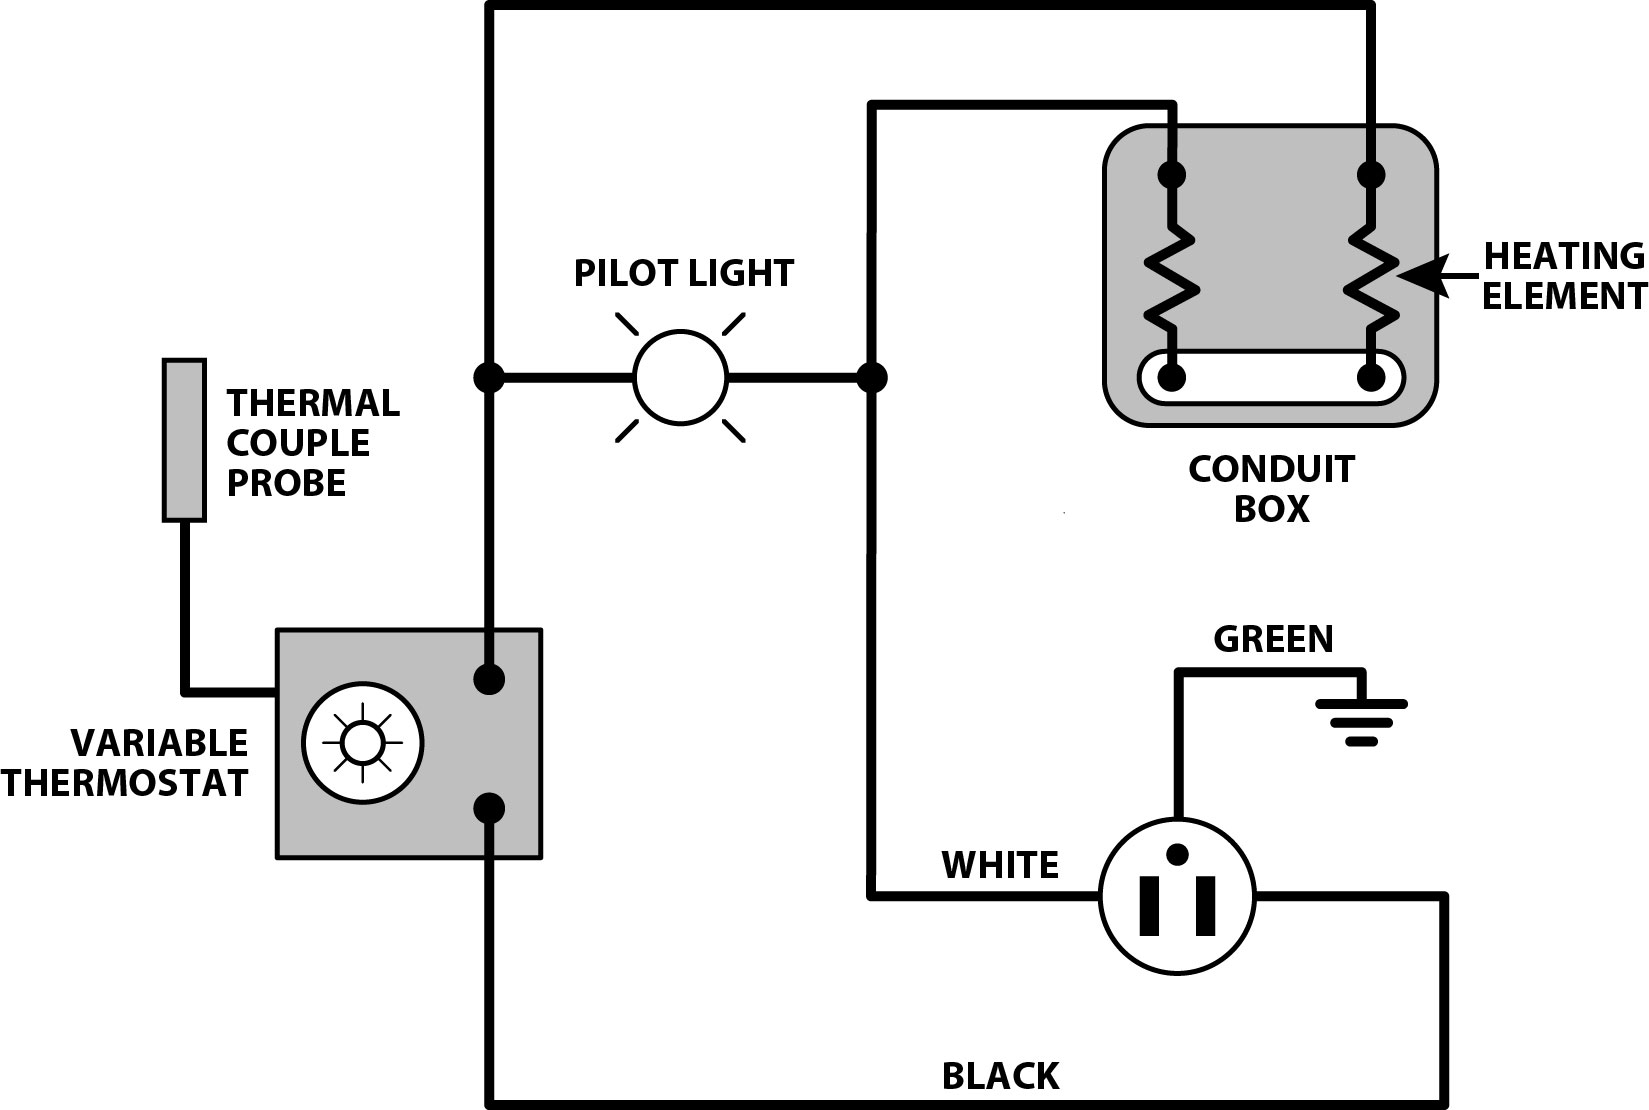 hight resolution of oven wiring diagram 110v wiring diagram third level 110v wiring diagram 110v electric wiring